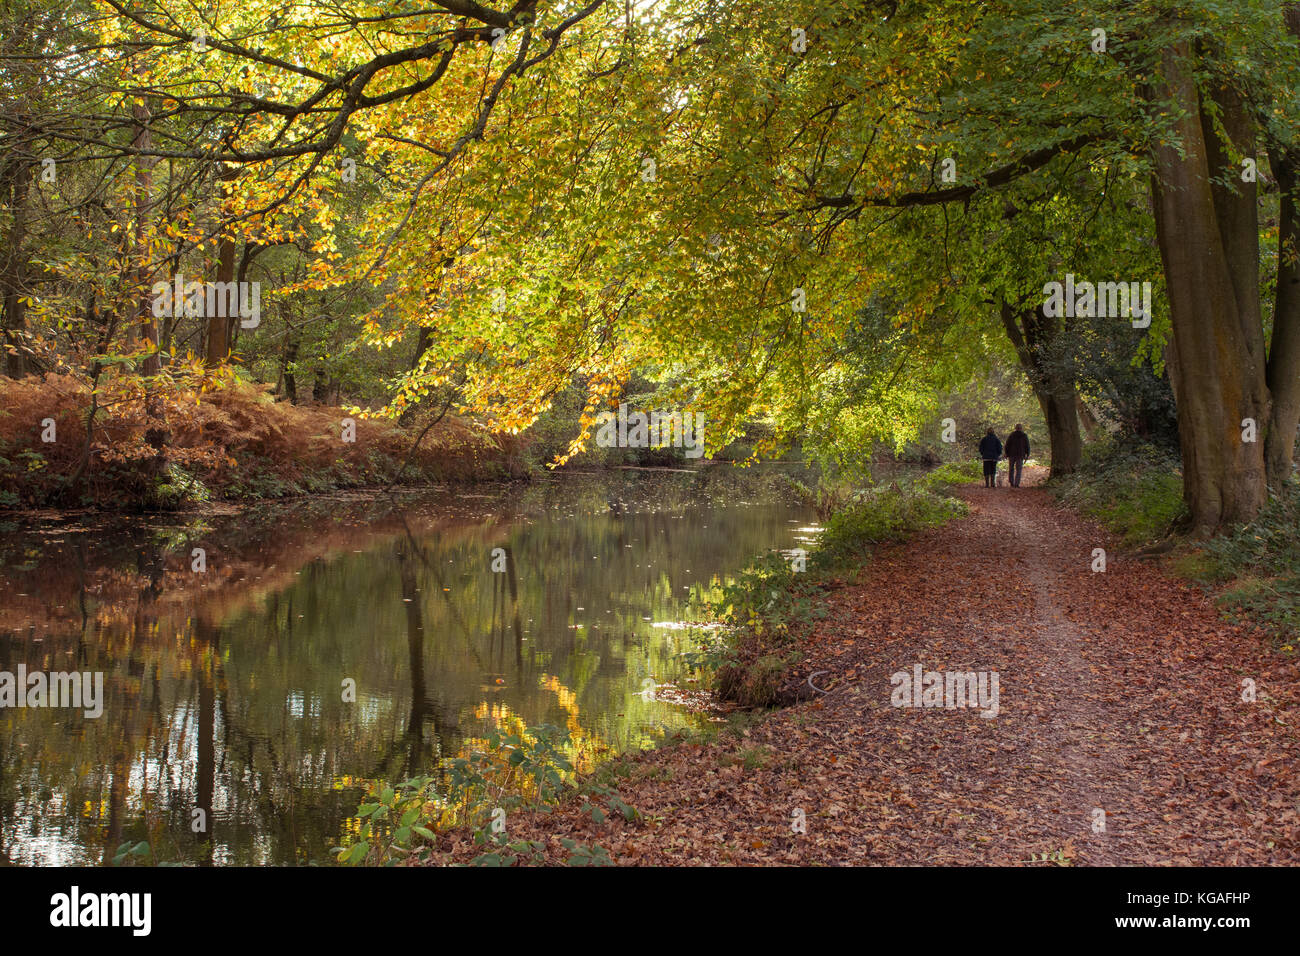 View of the Basingstoke Canal and towpath near Aldershot in Hampshire with autumn colours - Stock Image